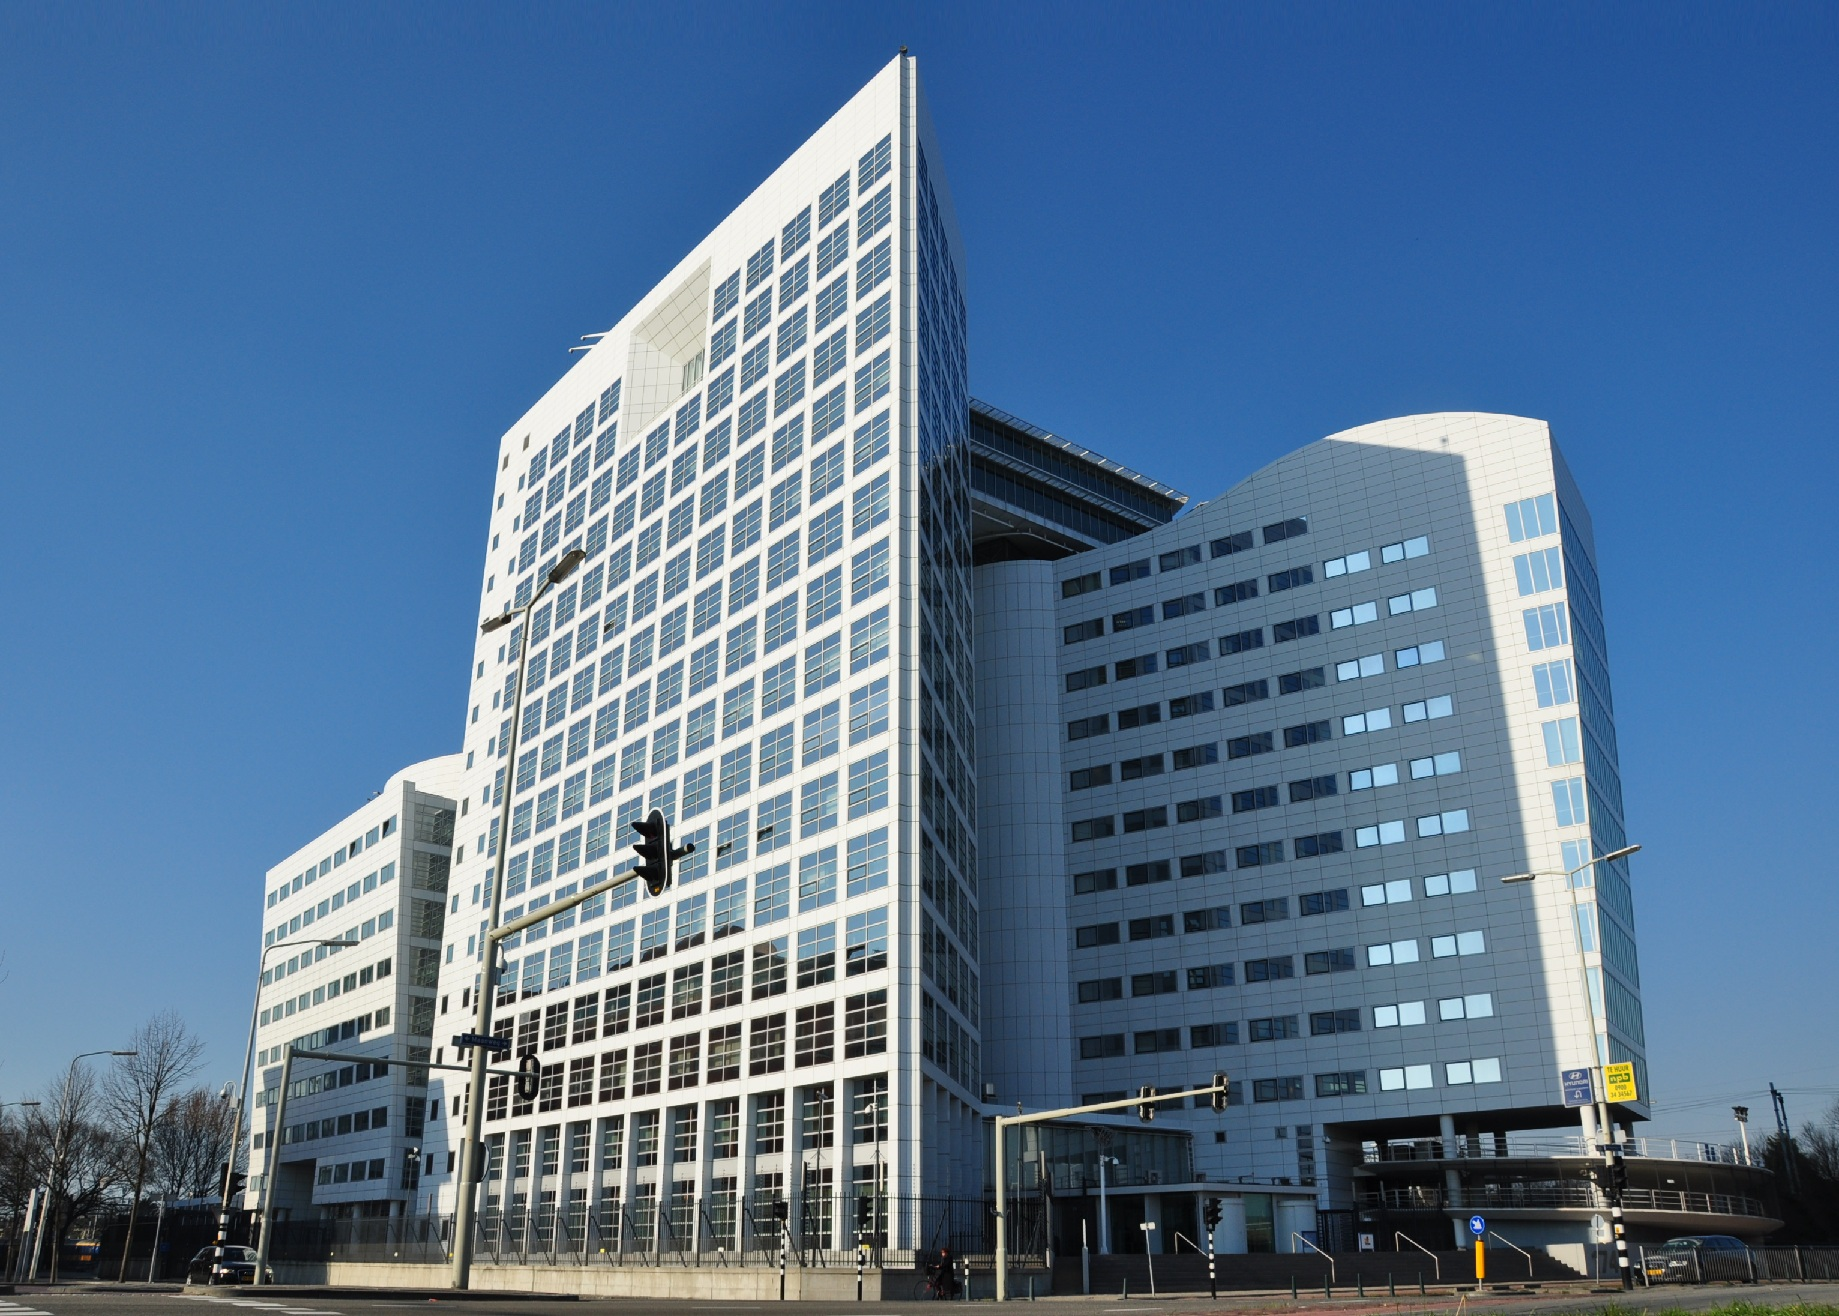 The International Criminal Court in The Hague (ICC/CPI), Netherlands. Photo source: Vincent van Zeijst via Wikimedia Commons